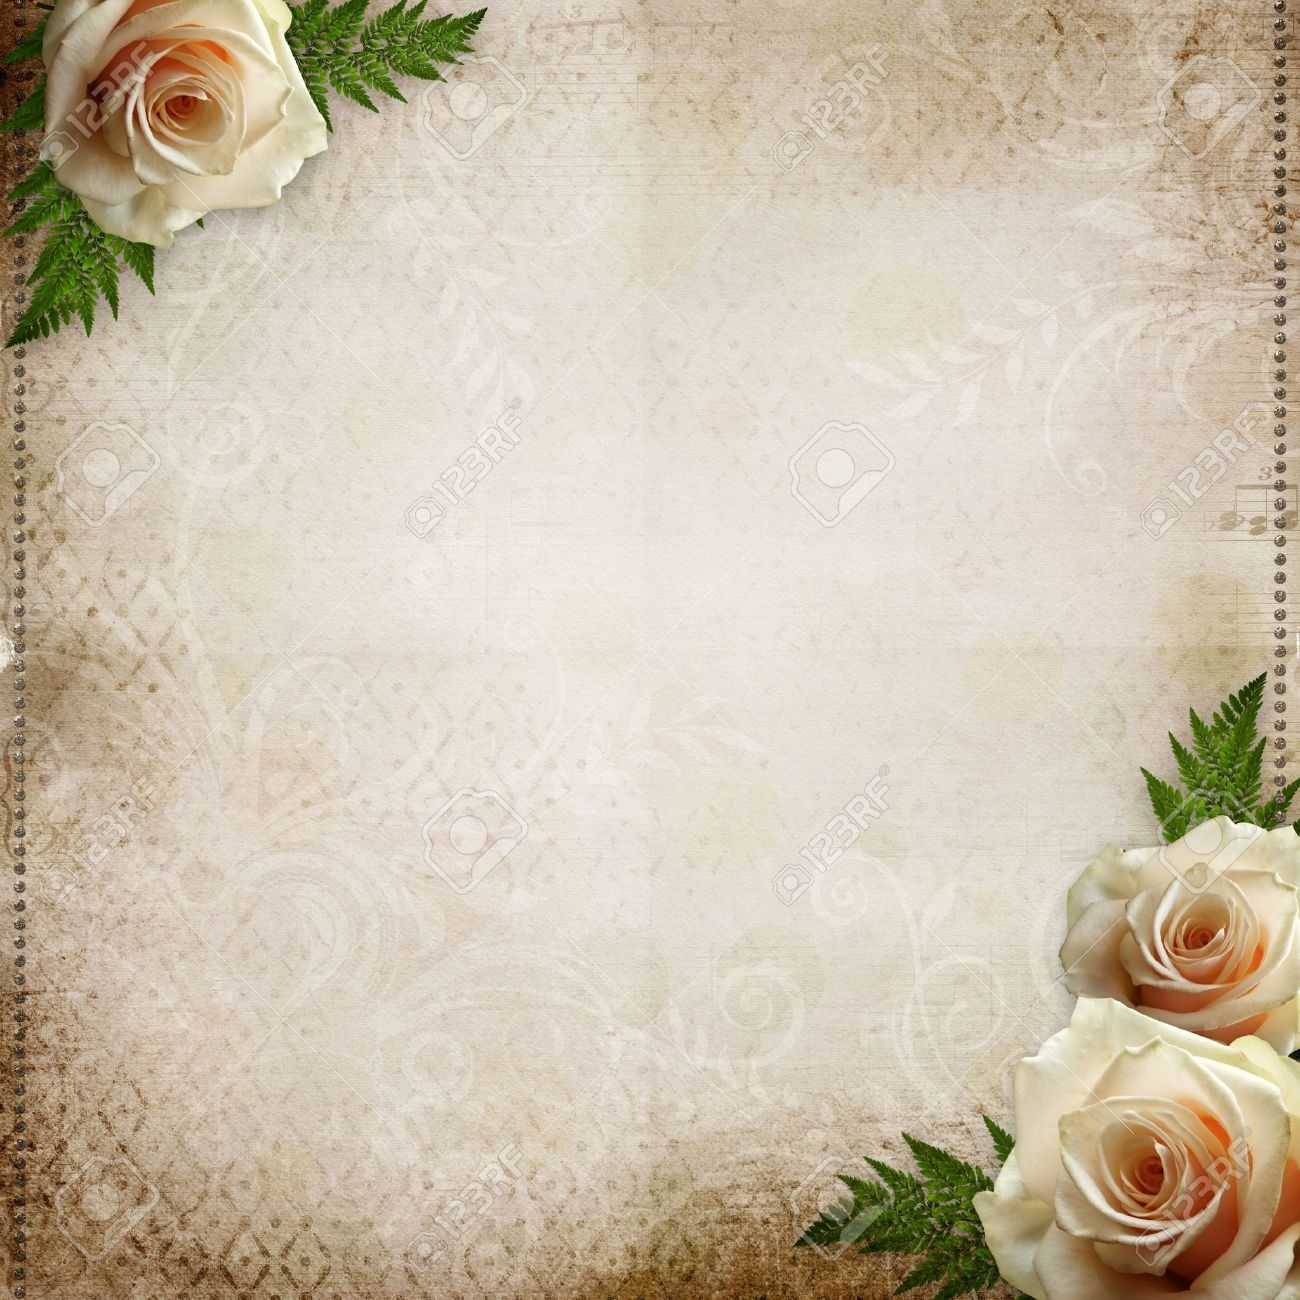 vintage beautiful wedding background stock photo picture and royalty free image image 11511892 vintage beautiful wedding background